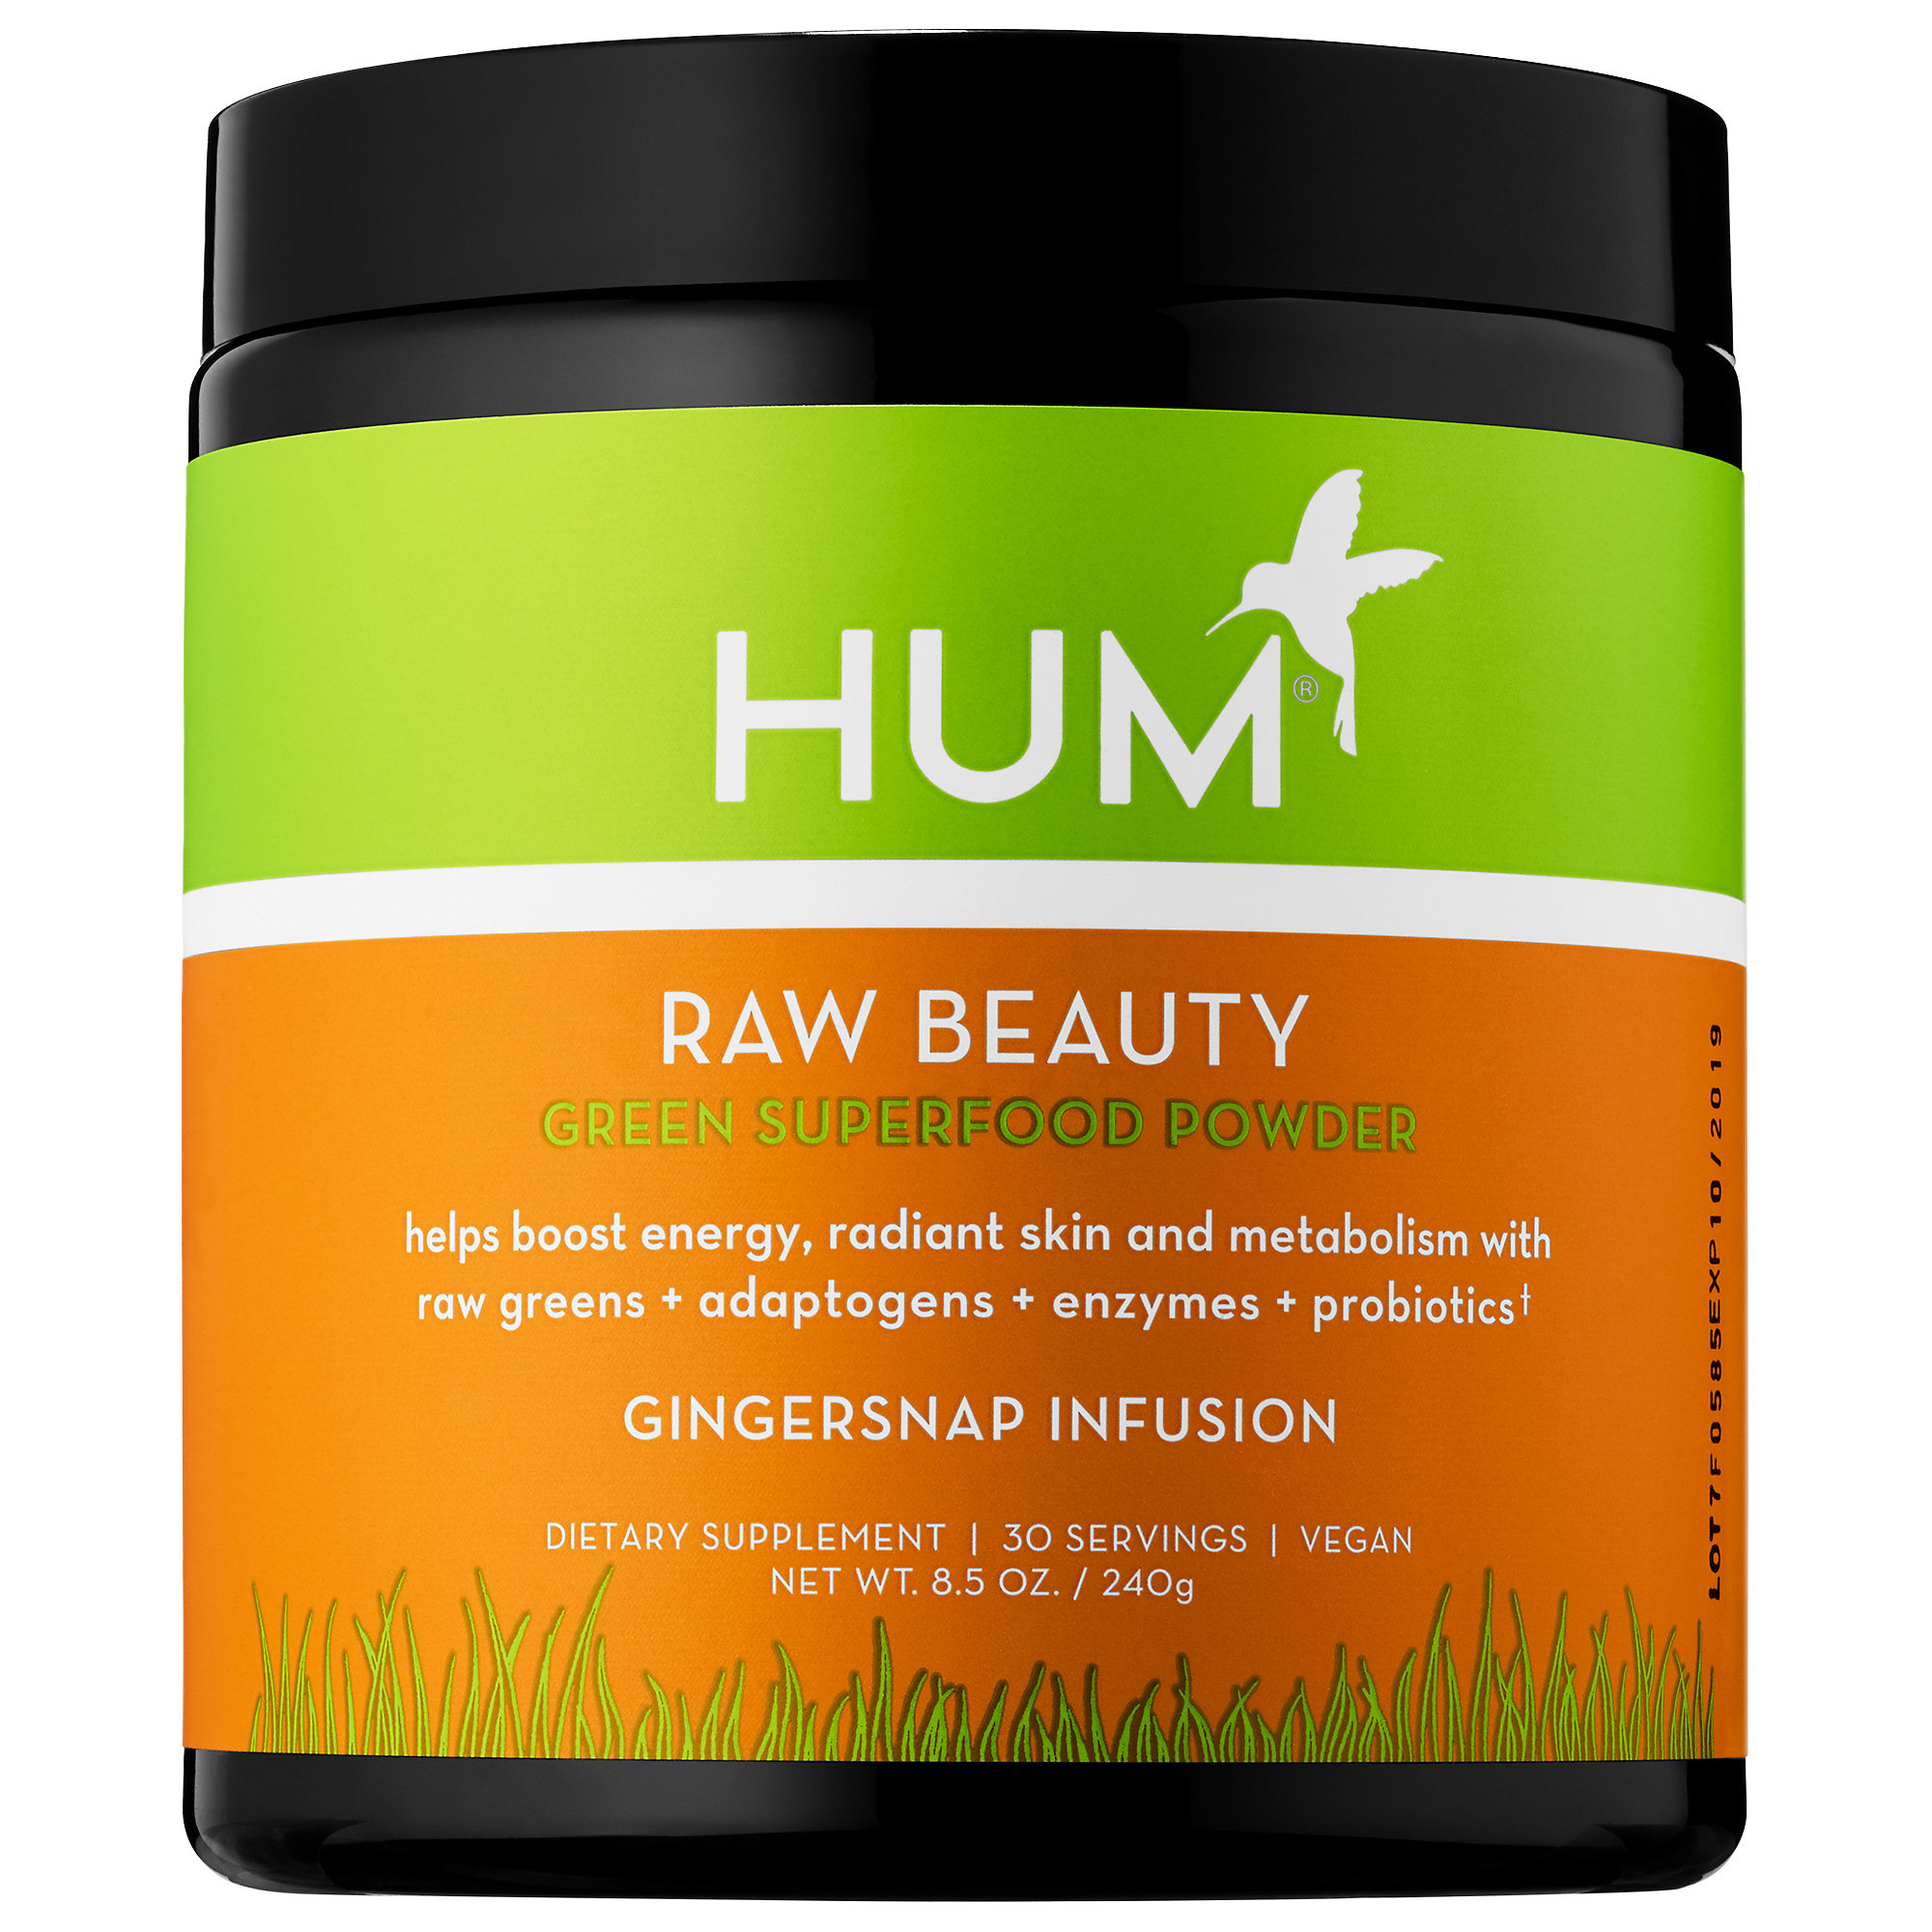 Raw Beauty HUM 39.00  https://www.sephora.com/product/raw-beauty-skin-energy-superfood-powder-gingersnap-infusion-P426837